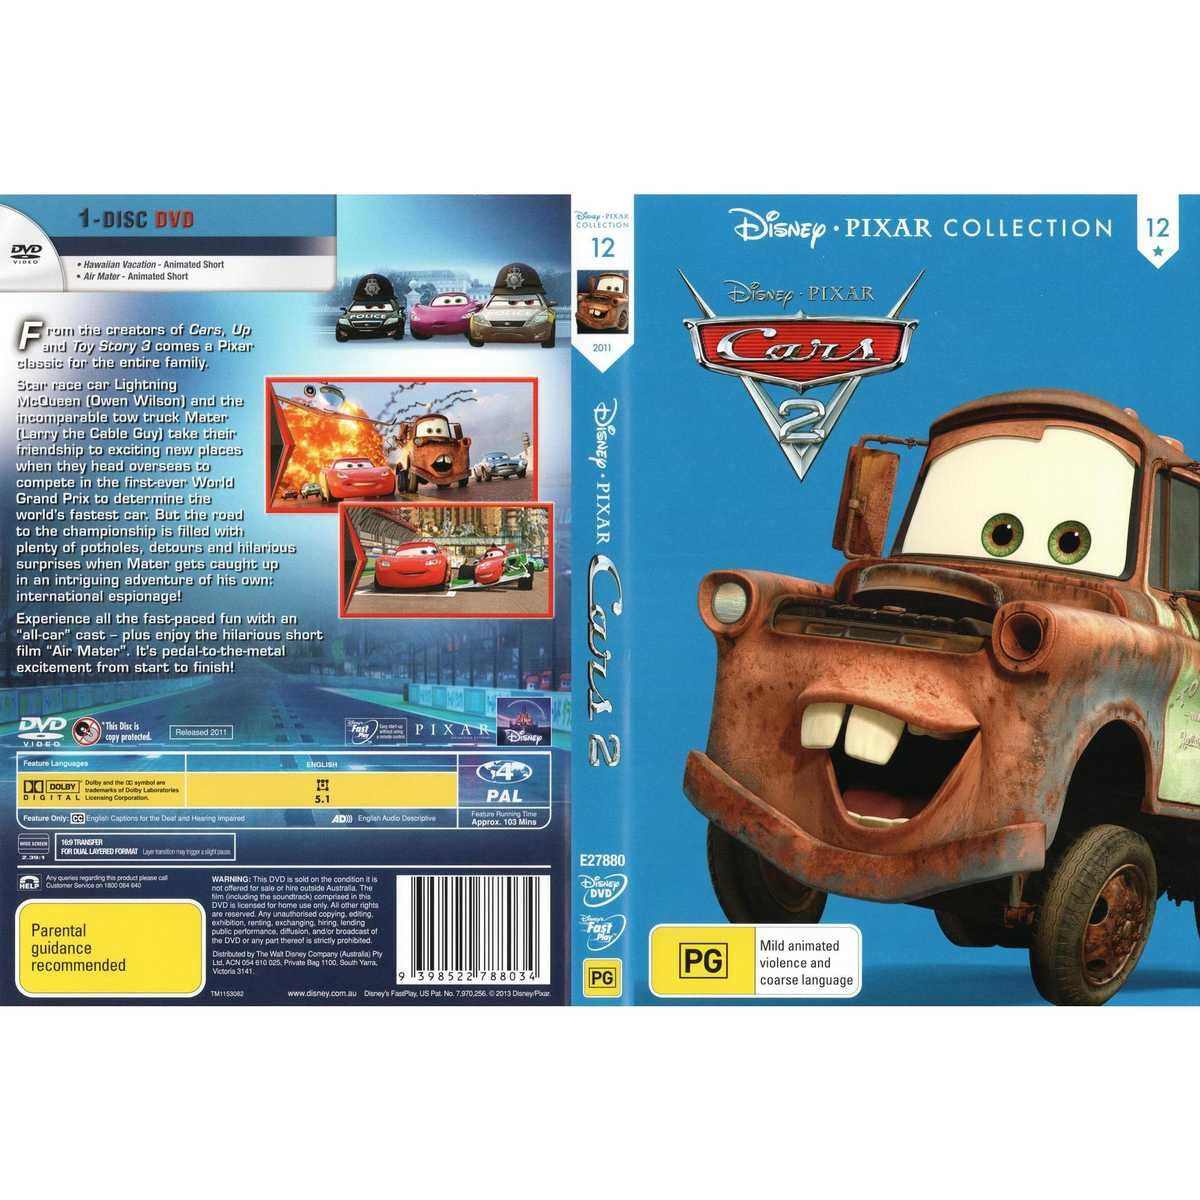 Big W Toy Cars Cars 2 Disney Pixar Collection Dvd Big W